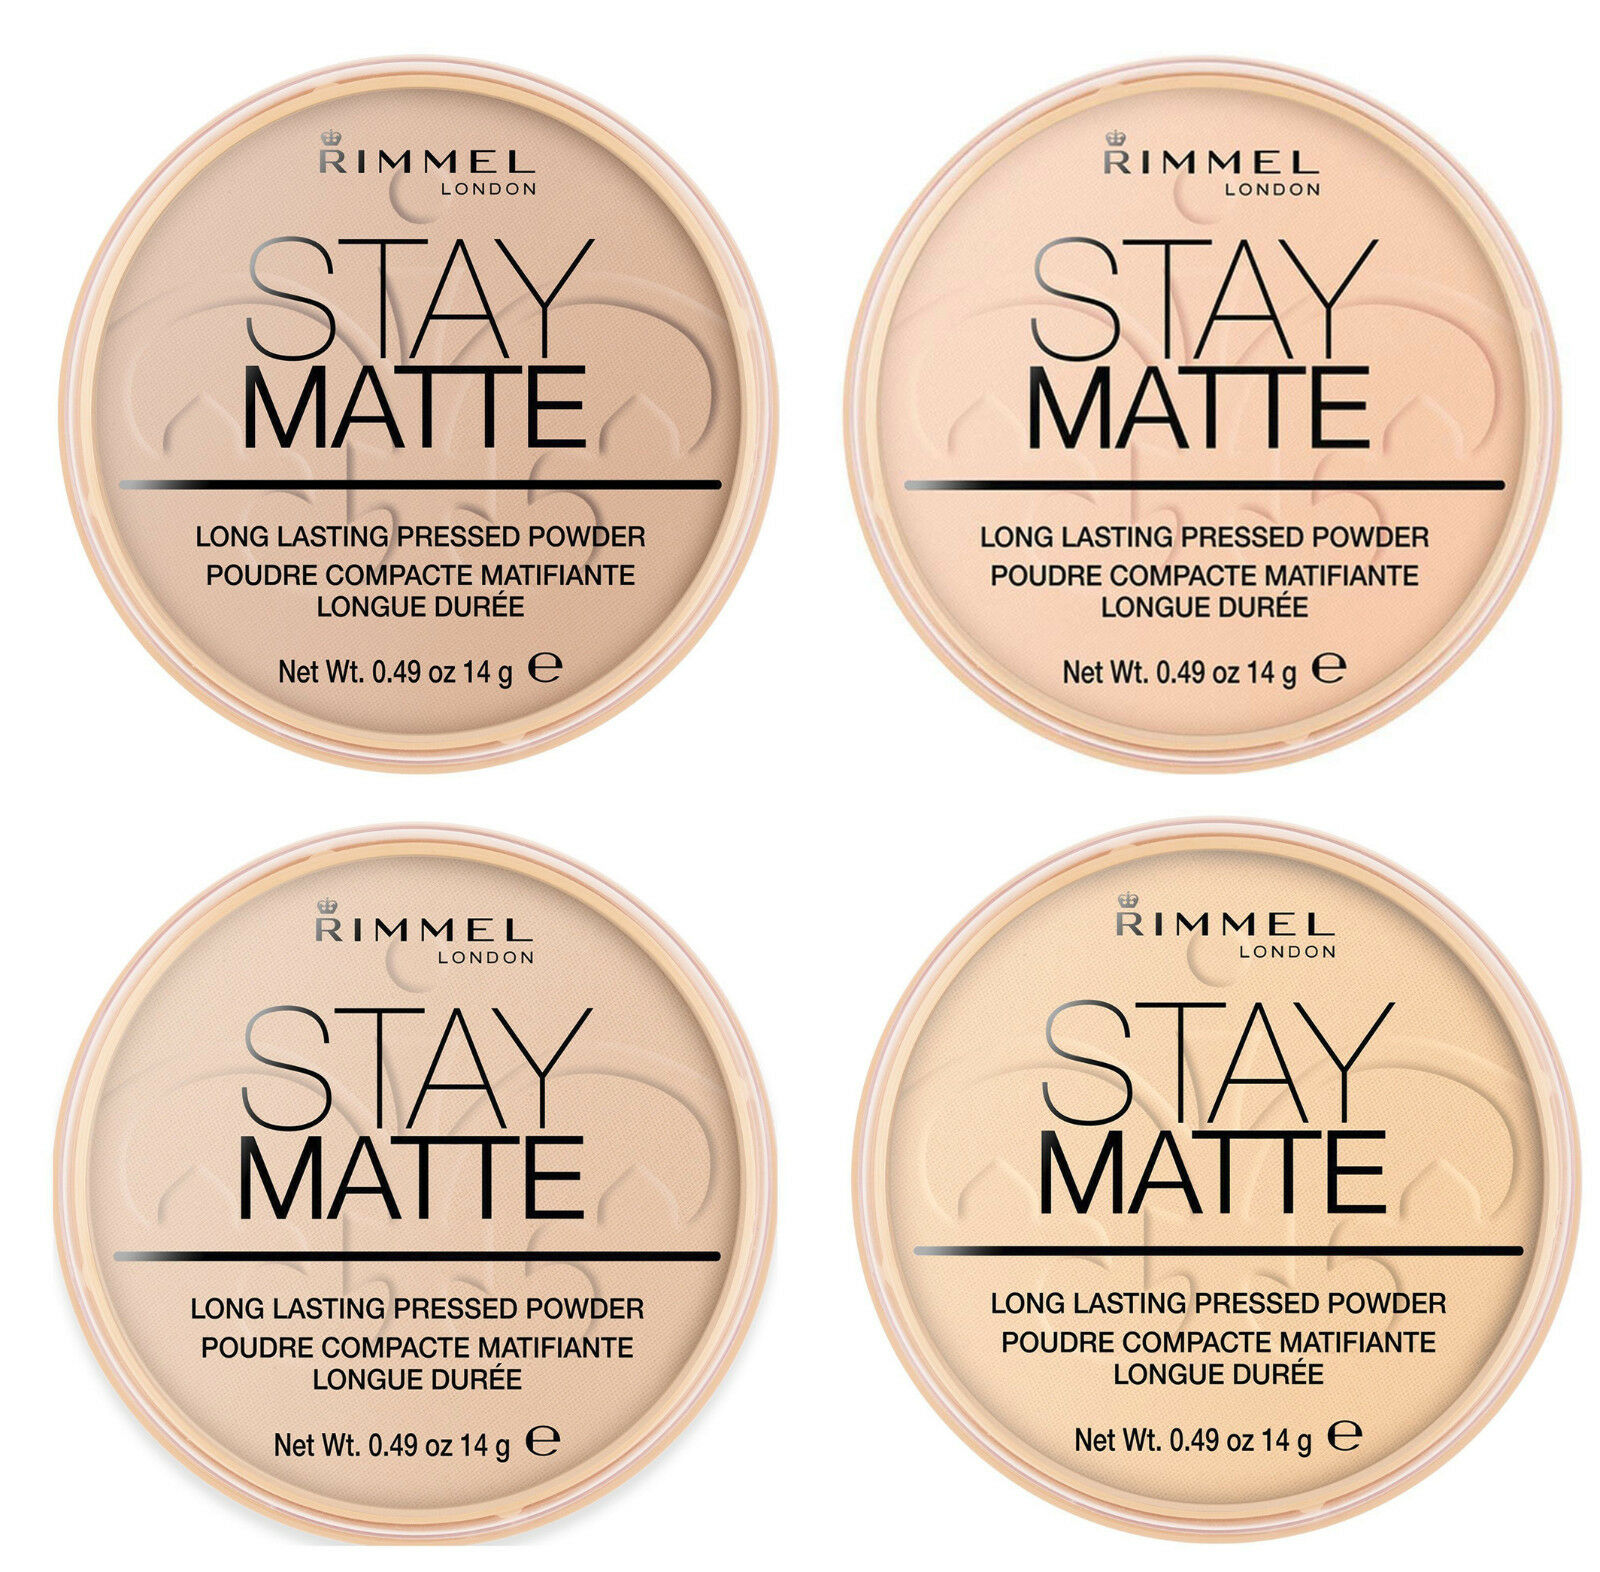 Rimmel Stay Matte Long Lasting Pressed Powder Choose Your Shade Ebay London Is Made To Give You The Perfect Lightweight Mattifying And Coverage That Will Bring Beauty Of Skin